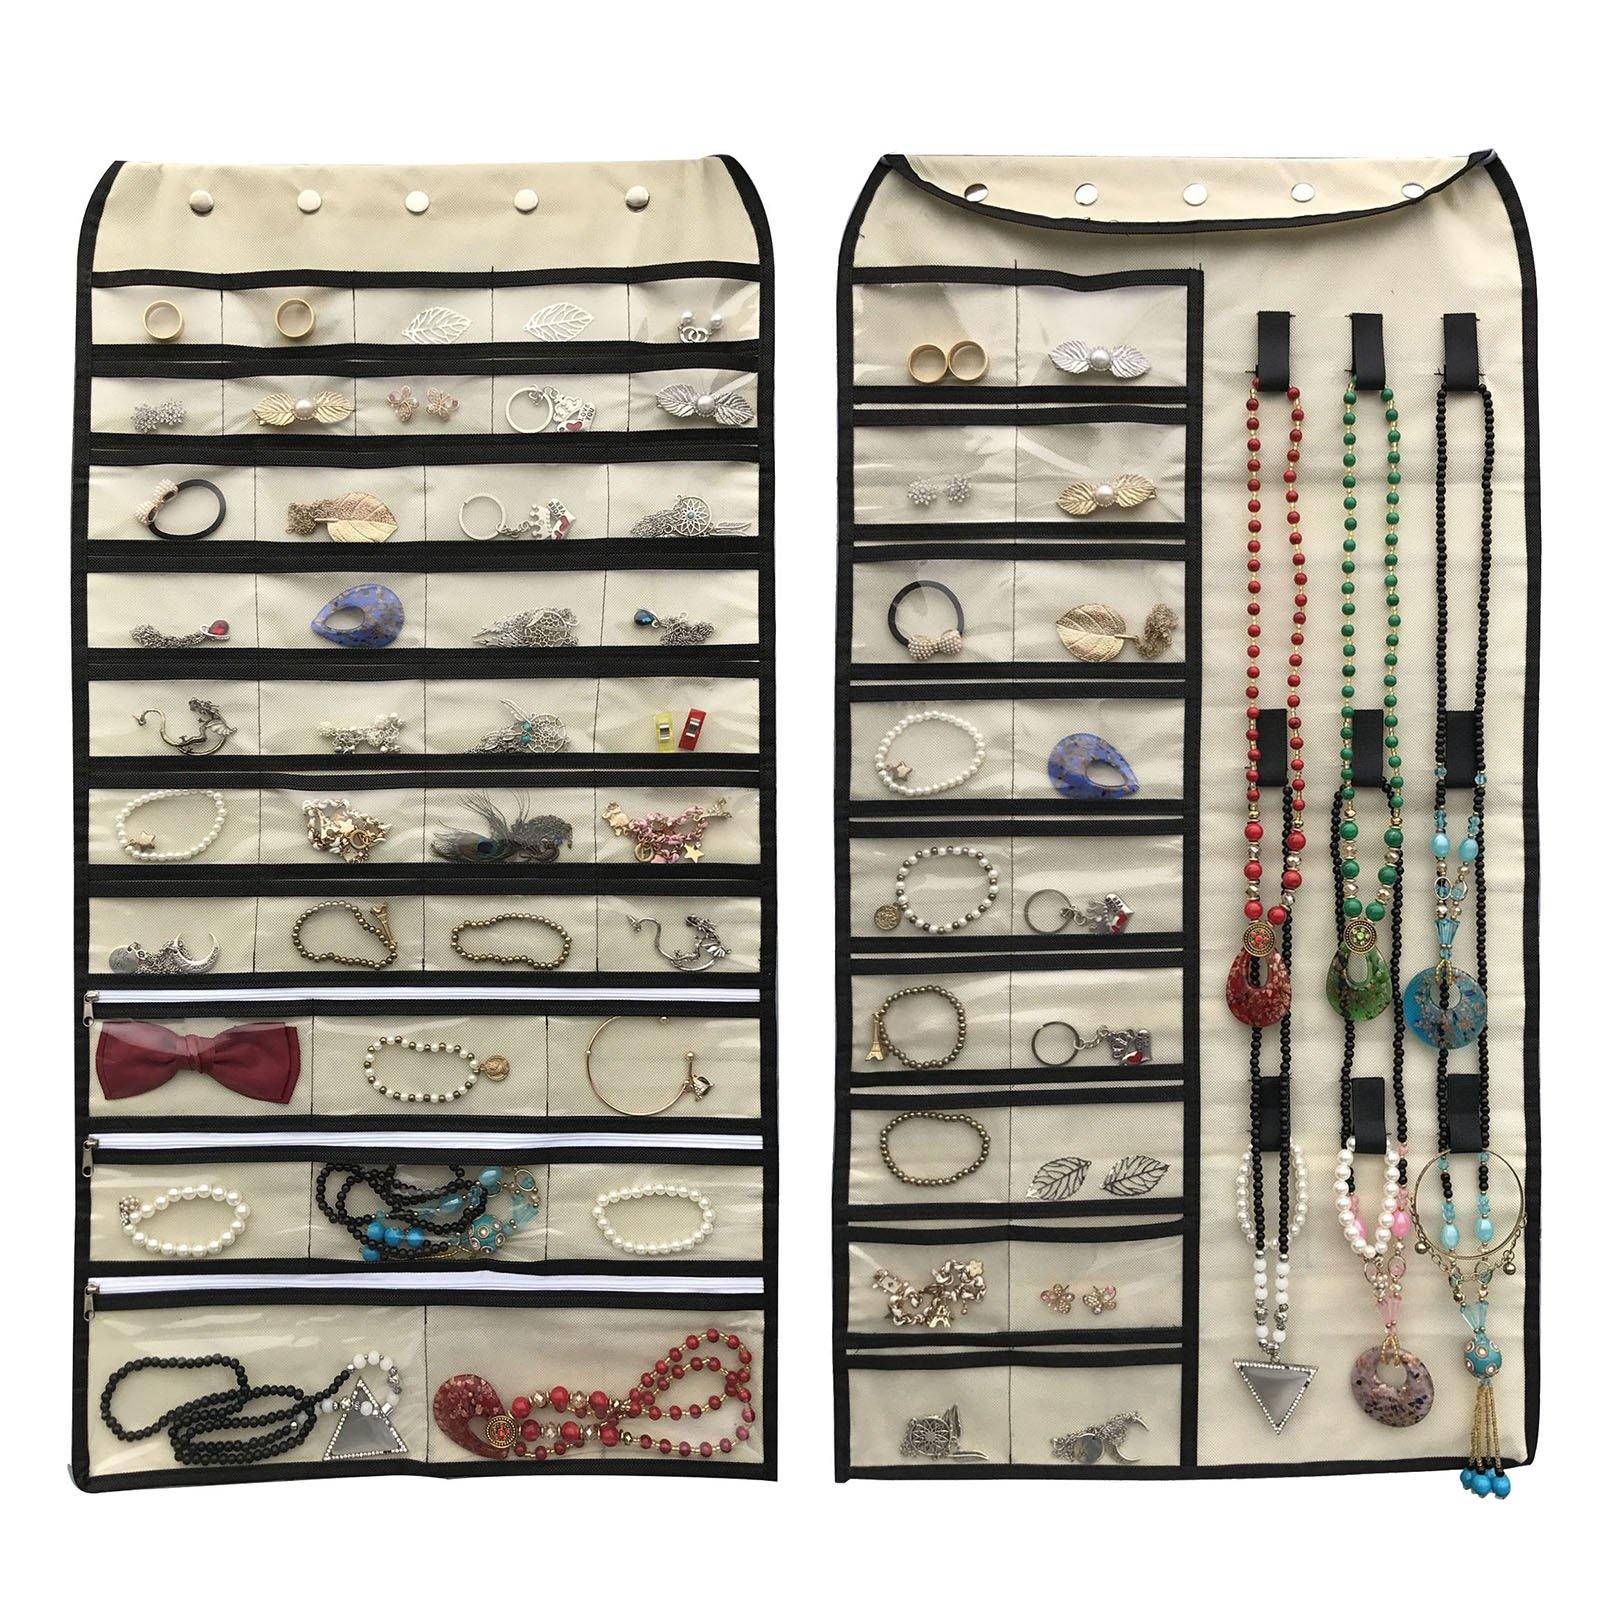 BFOX Hanging Jewelry Organizer,Double Sided 56 Pockets&9 Velcro Hook for Holding Jewelry (Beige)